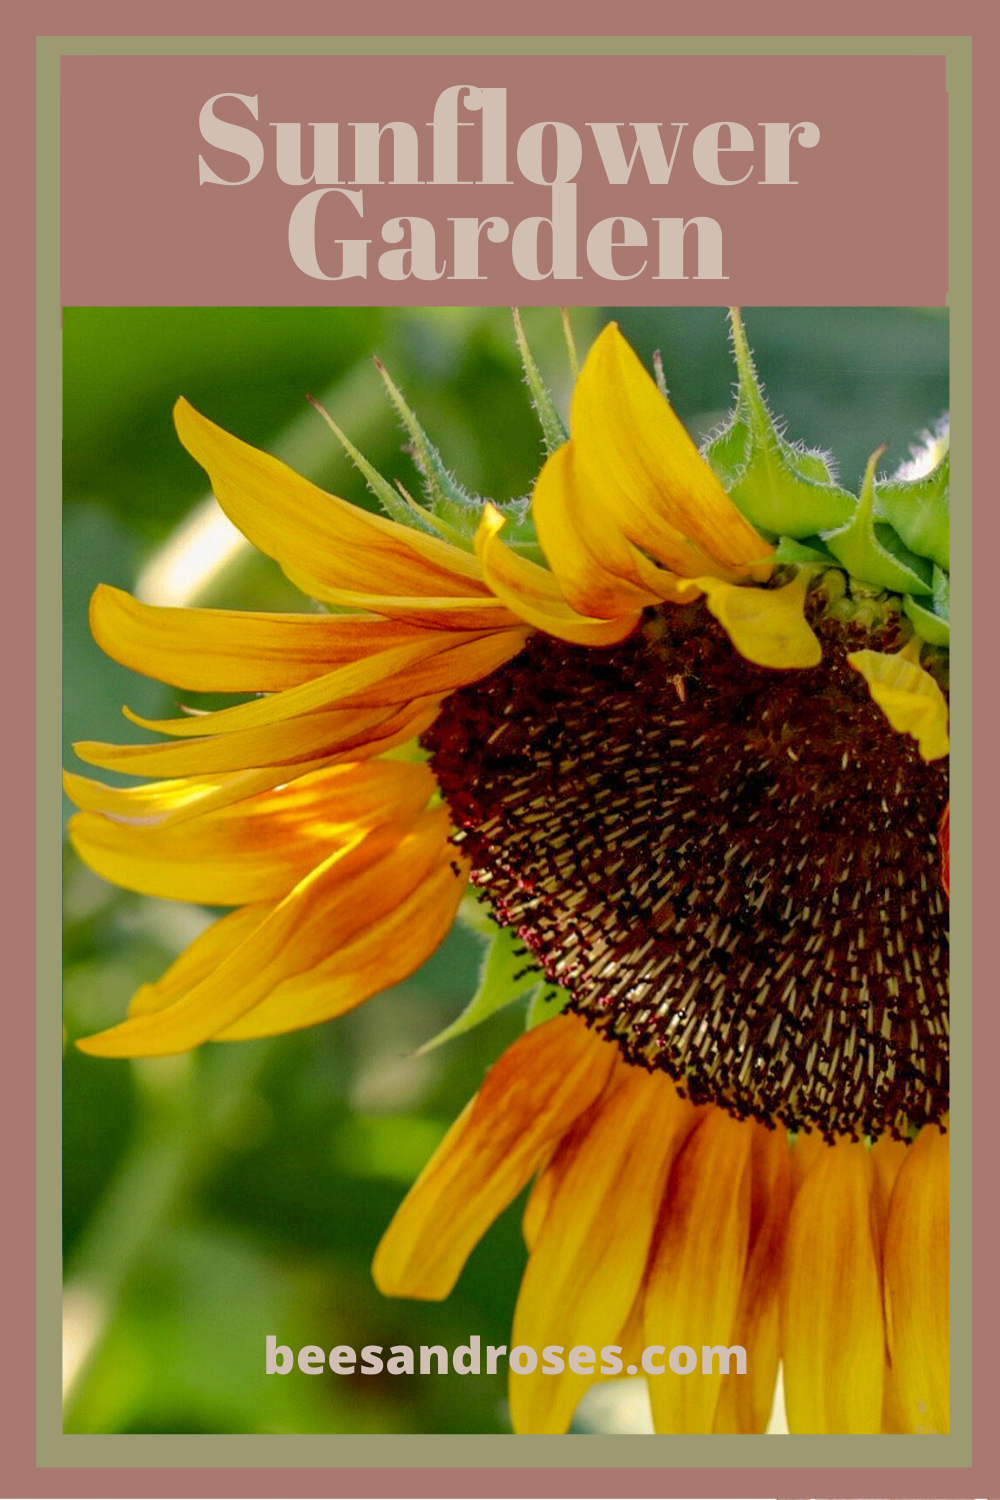 Sunflower Gardens make me smile. The flowers just look like happy faces. If you've ever wondered how to grow a sunflower garden, read this post for tips and tricks and ideas that will make your backyard super cute and one that looks happy. #beesandrosesblog #sunflowers #gardeningtips #howtogrowasunflowergarden